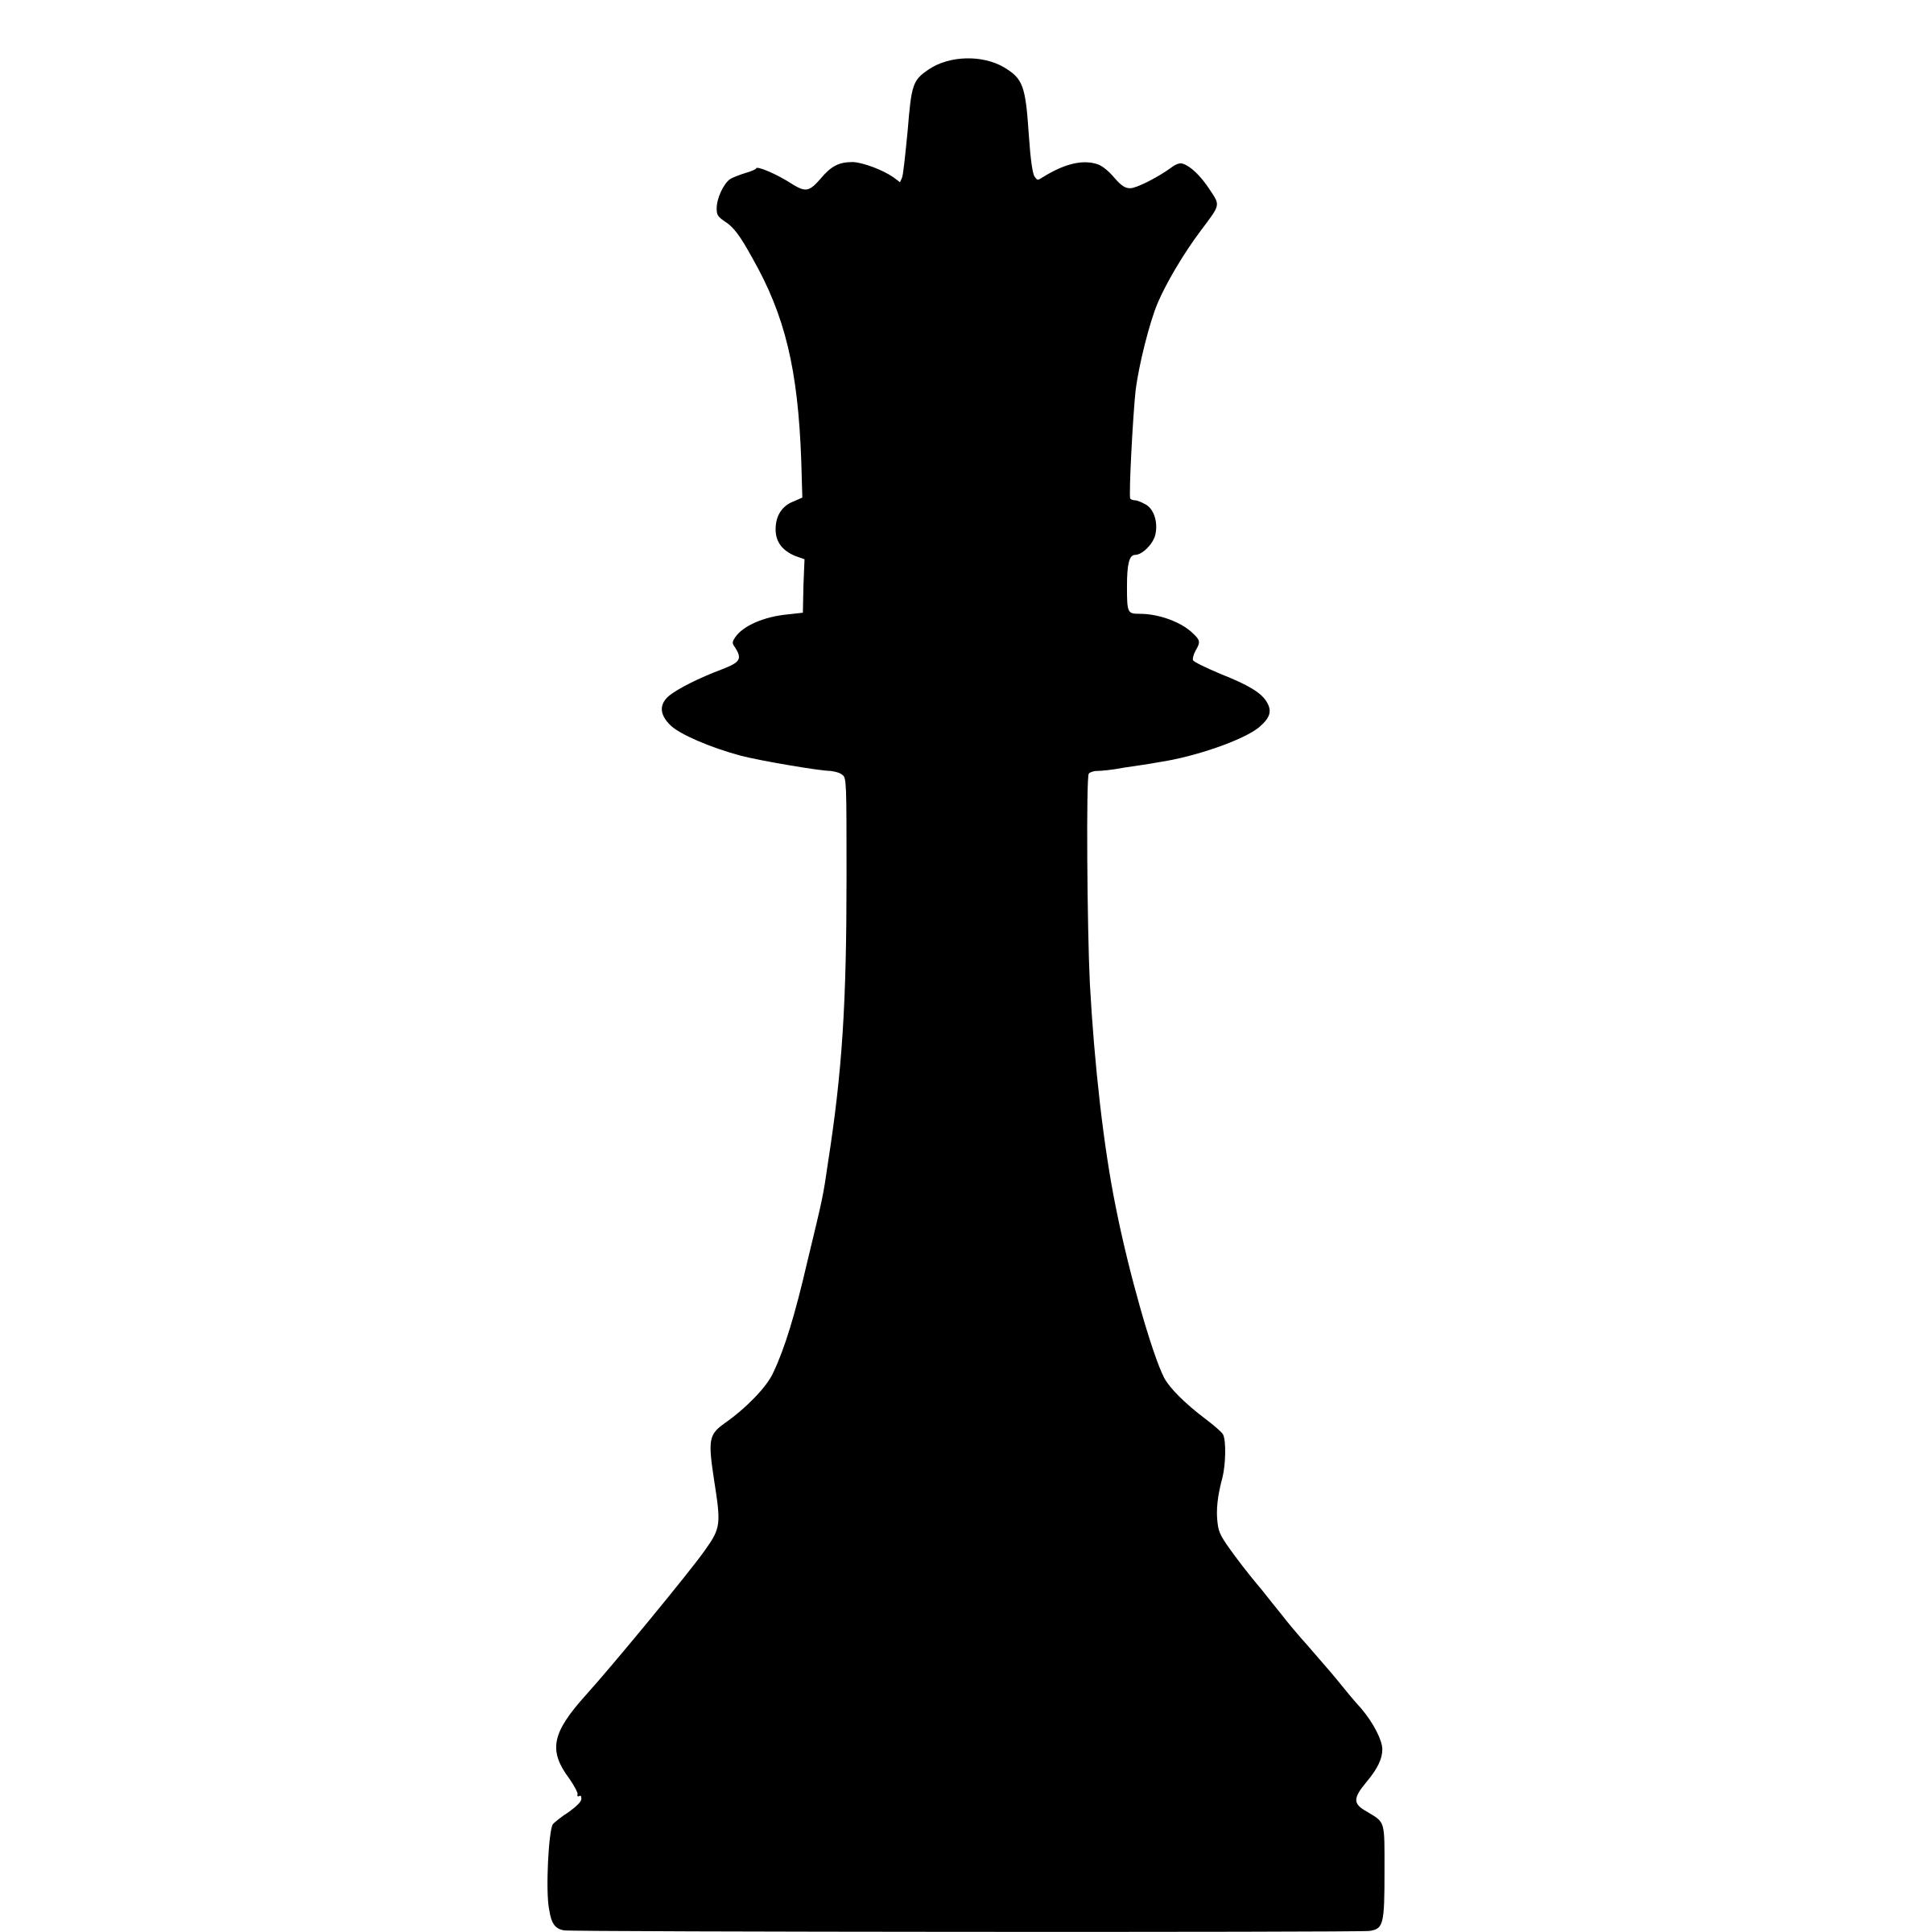 2400x2400 Silhouette Chess Piece Remix Queen Dama Icons Png